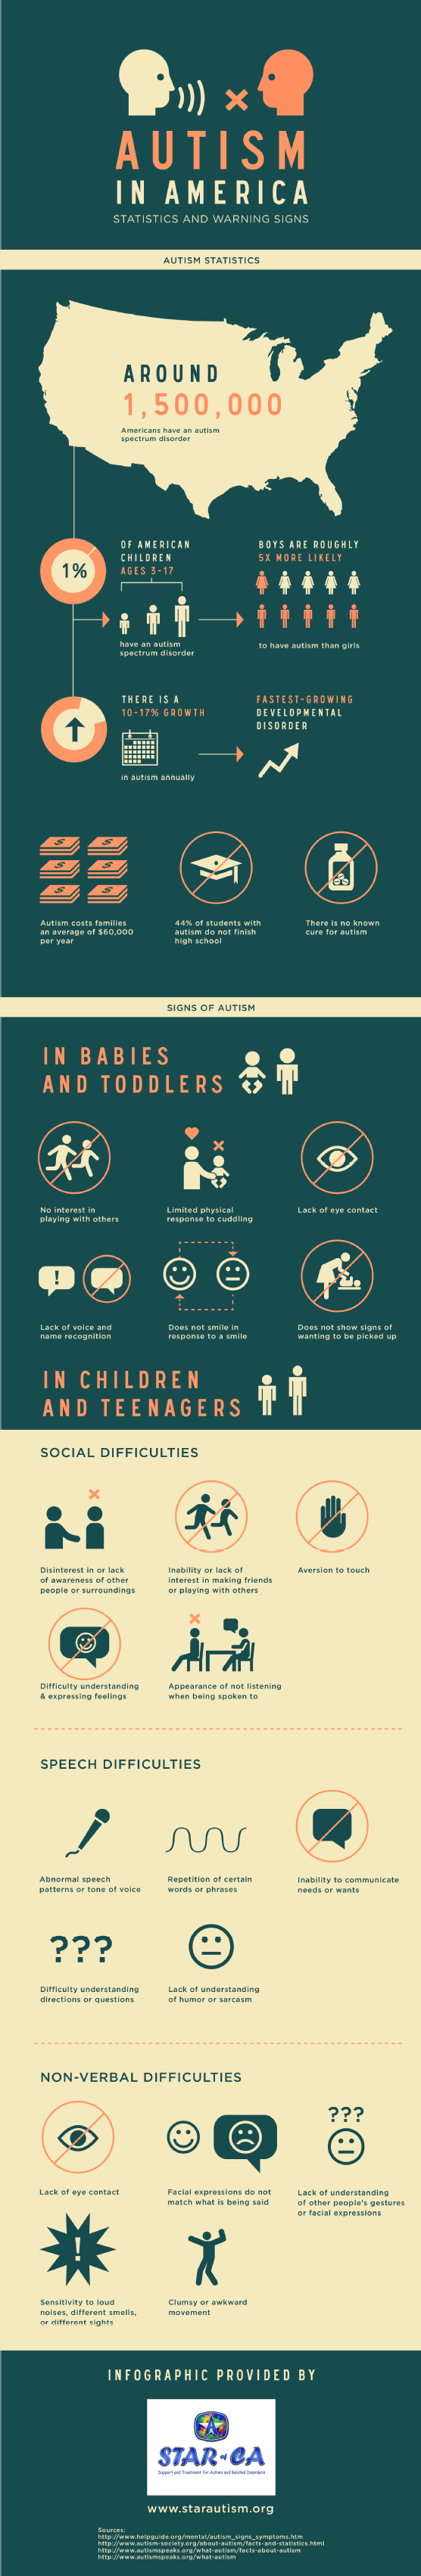 9. Autism in America statistics and warning signs